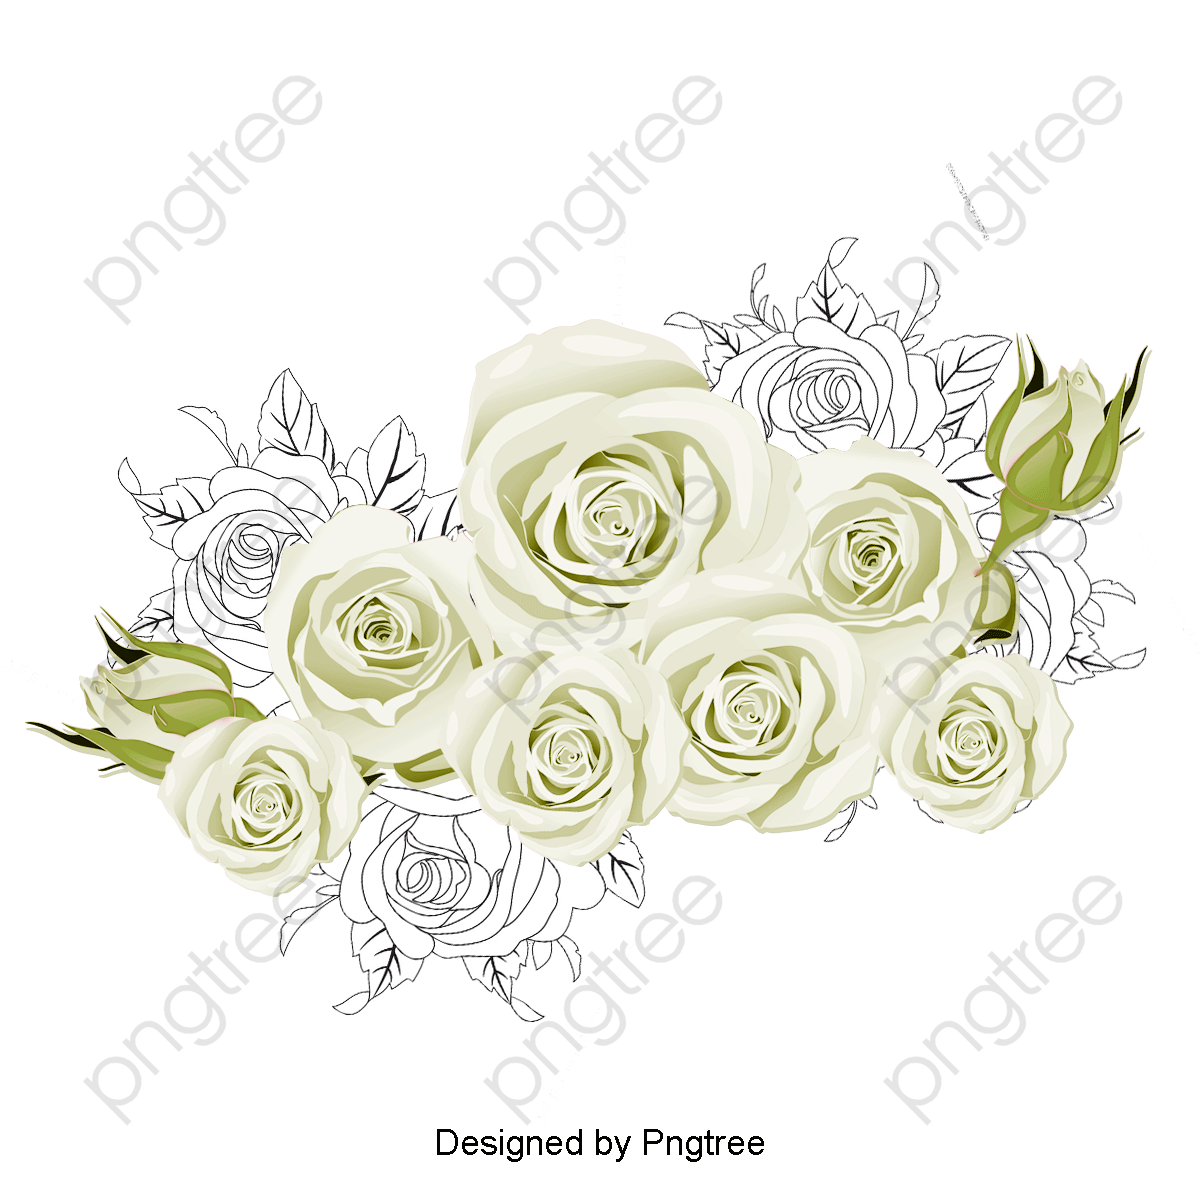 Transparent White Roses Png Format Image With Size 1200 1200 Preview